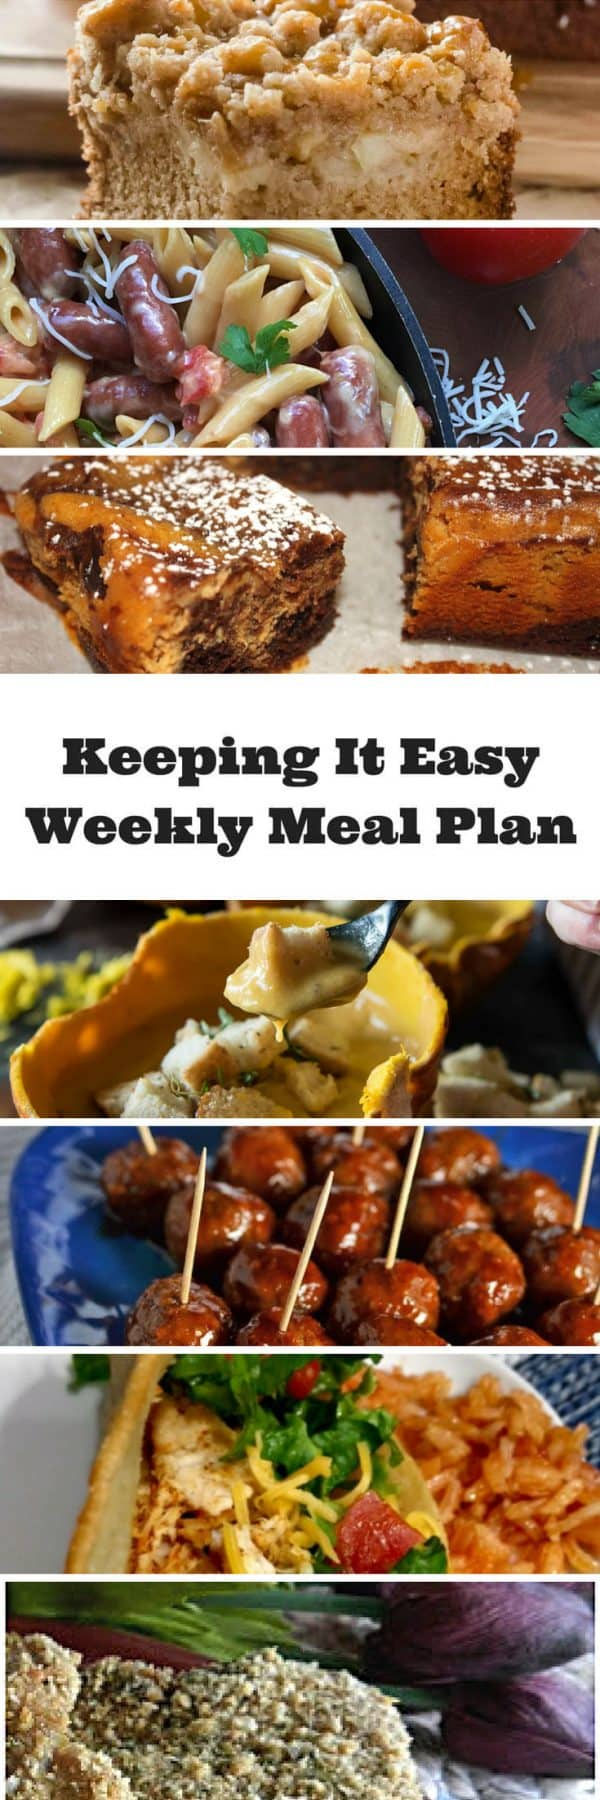 #KeepItEasy Weekly Meal Plan - Week 40